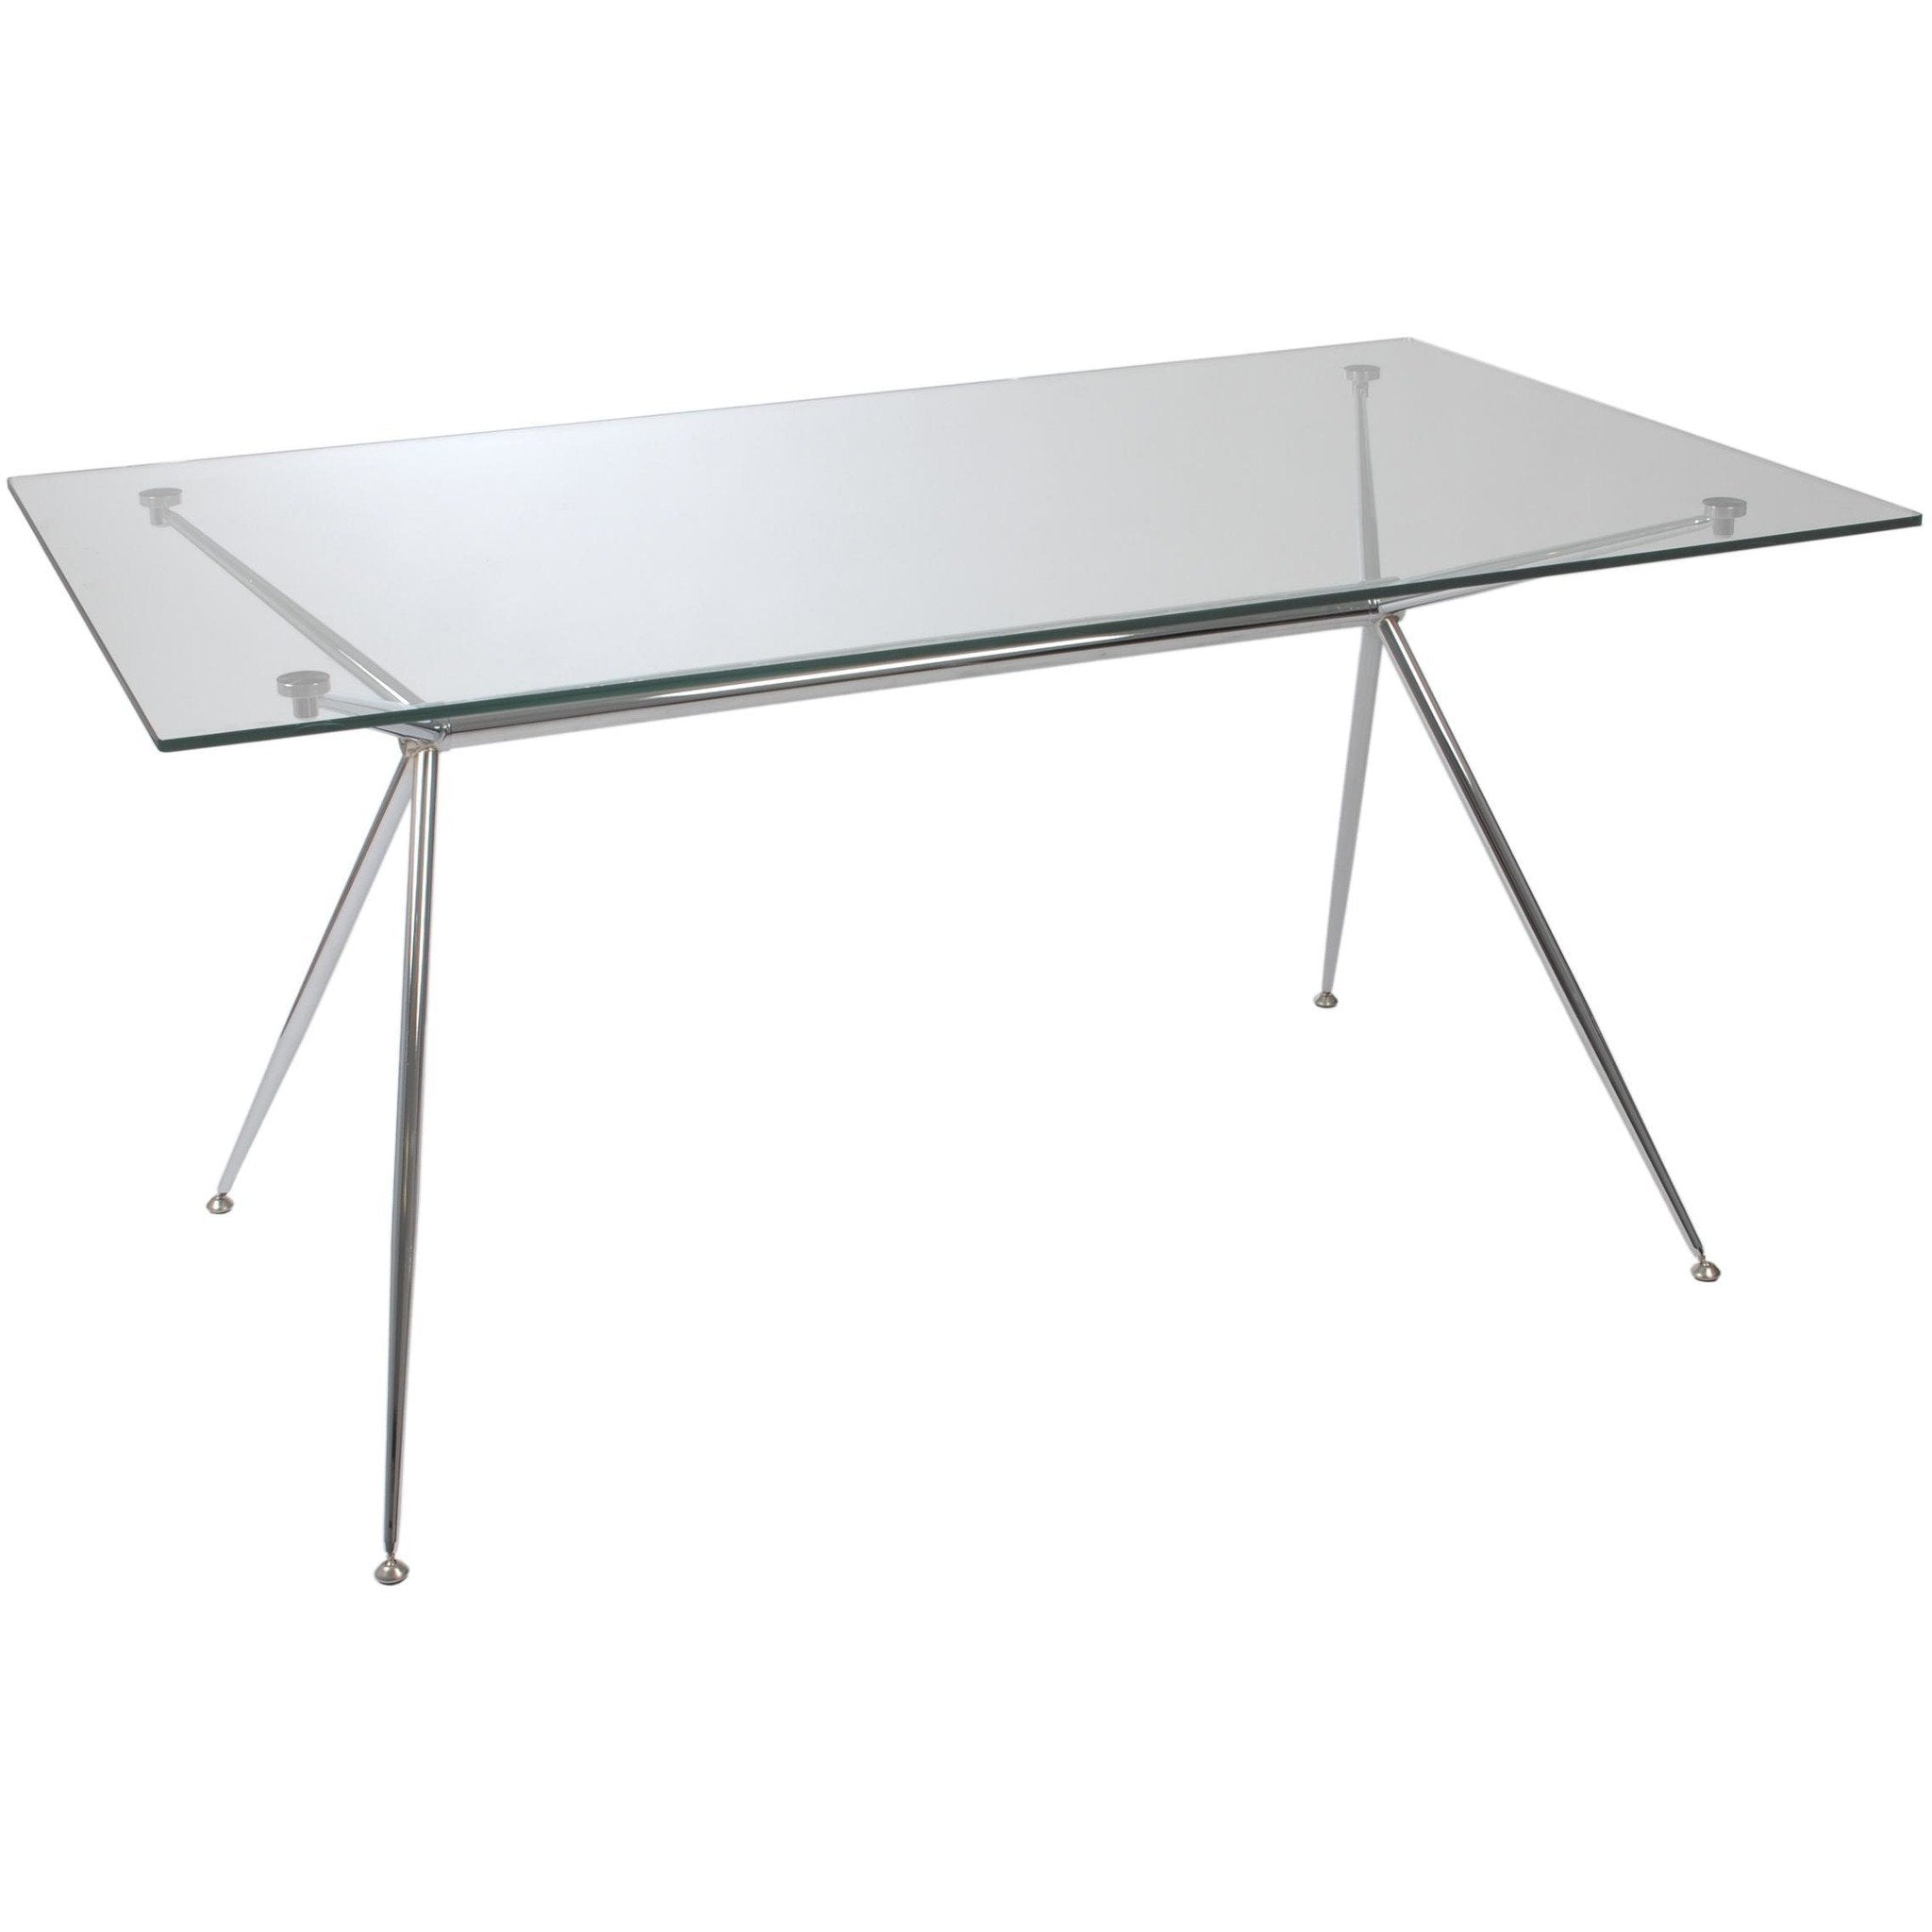 Shop Online 66 Inch Rectangular Dining Table for Home – All World on home furniture couch, wood furniture dining table, thomasville furniture dining table, bob furniture dining table, fine furniture dining table, mission furniture dining table, star furniture dining table, small spaces furniture dining table, mor furniture dining table, ashley furniture dining table, home furniture bar, contemporary furniture dining table, home furniture bedroom furniture, global furniture dining table, el dorado furniture dining table, big lots furniture dining table, cort furniture dining table, amish furniture dining table, outdoor patio furniture dining table, home furniture recliner,